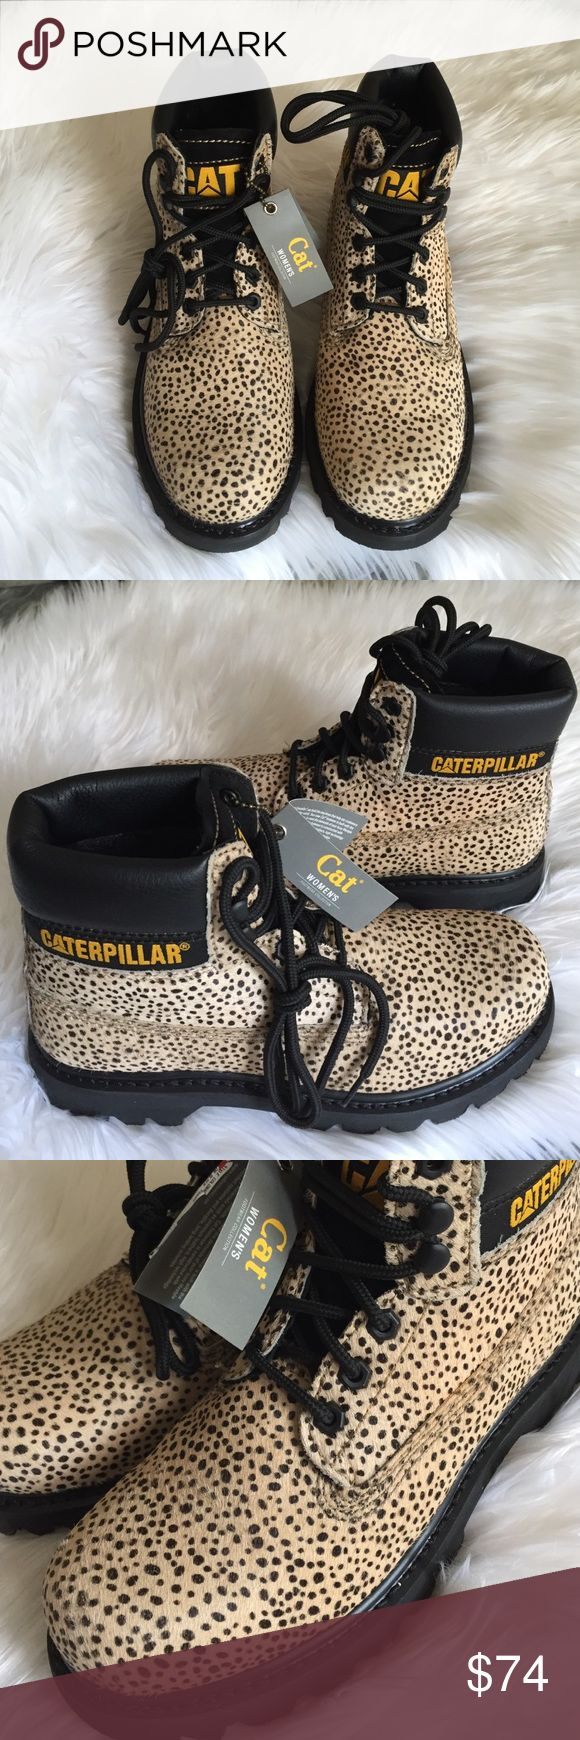 "•Caterpillar Boots• The Colorado has been a classic from de very beginning.Its stylish look and rigid construction make it the ideal boot for any occasion/calf hair upper/full grain leather/Goodyear welt construction/1"" heel height/mesh lining/poliyou sock liner/T3 lug outsole/new without box/price is firm/thanks for looking😉                                                        ❌No Trades❌ Caterpillar Shoes"